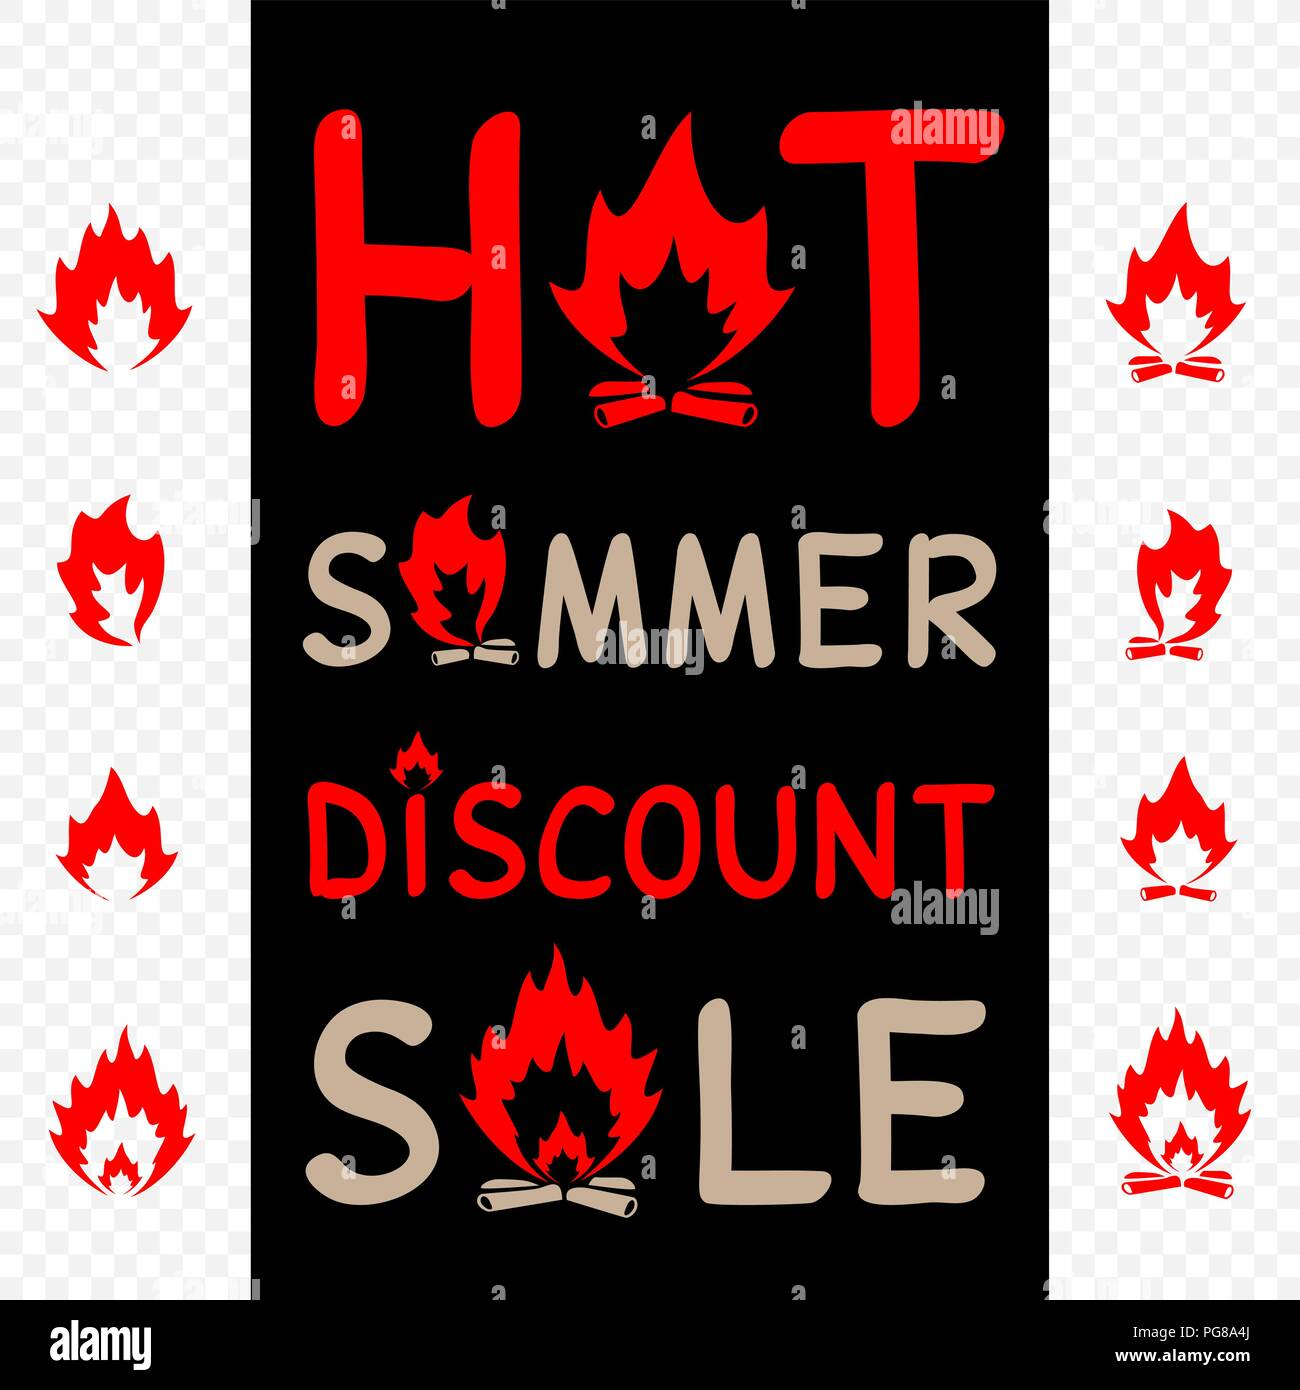 hot summer sale sign icon - Stock Vector